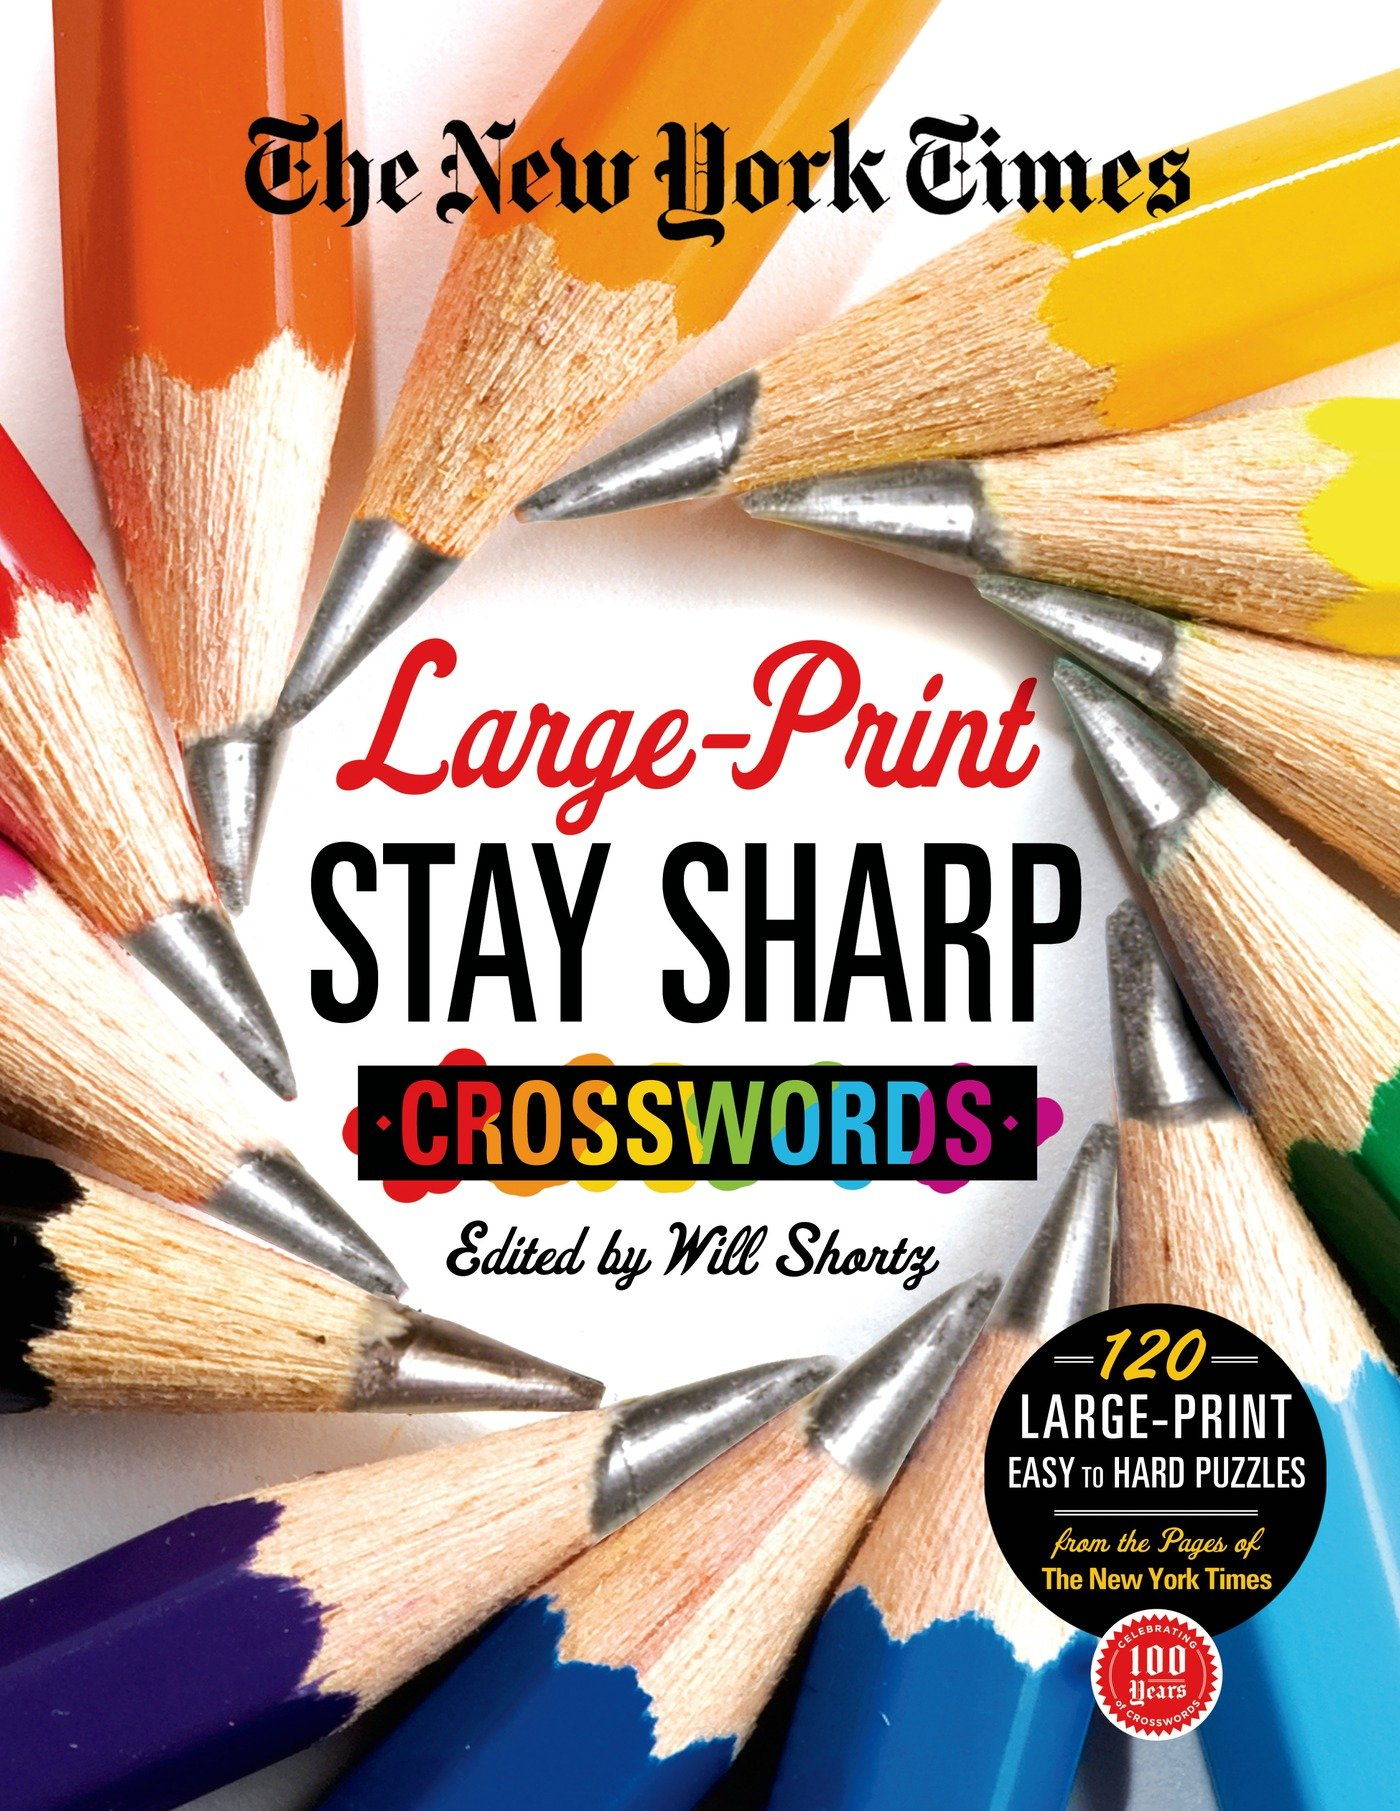 The New York Times Large-Print Stay Sharp Crosswords: 120 Large-Print Easy to Hard Puzzles from the Pages of The New York Times (New York Times Crossword Collections) pdf epub